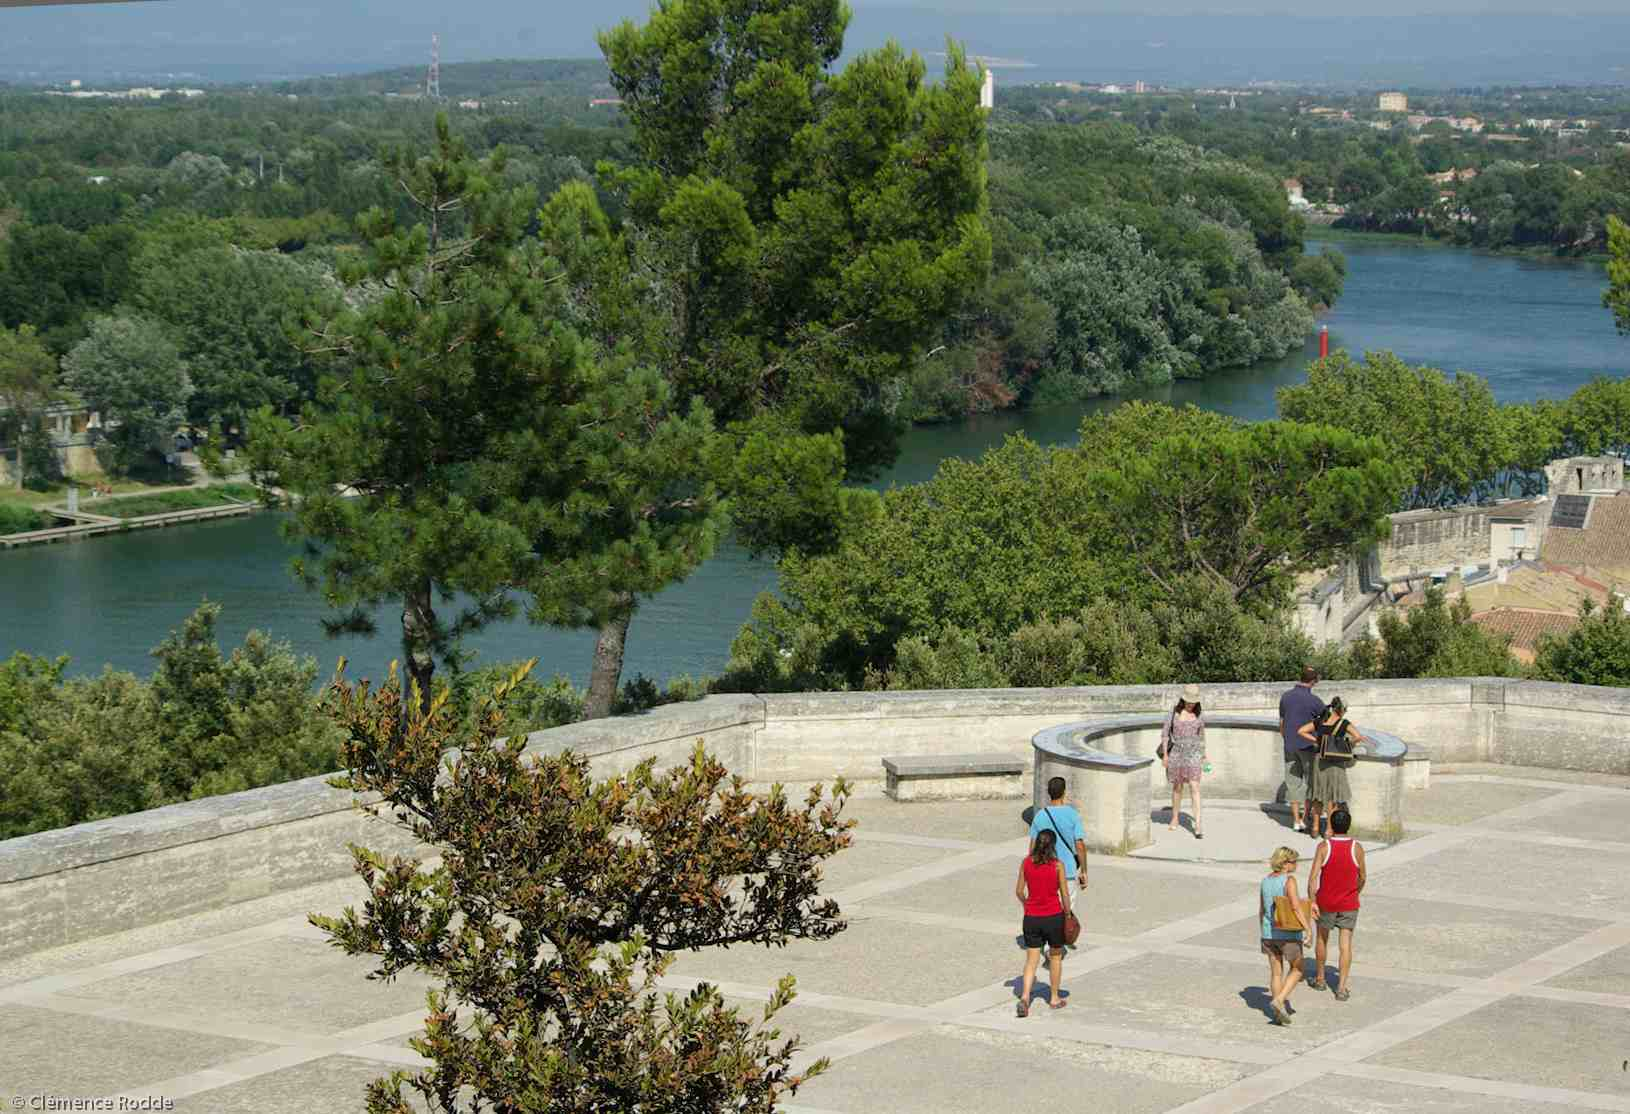 View from the Rocher des Doms Park